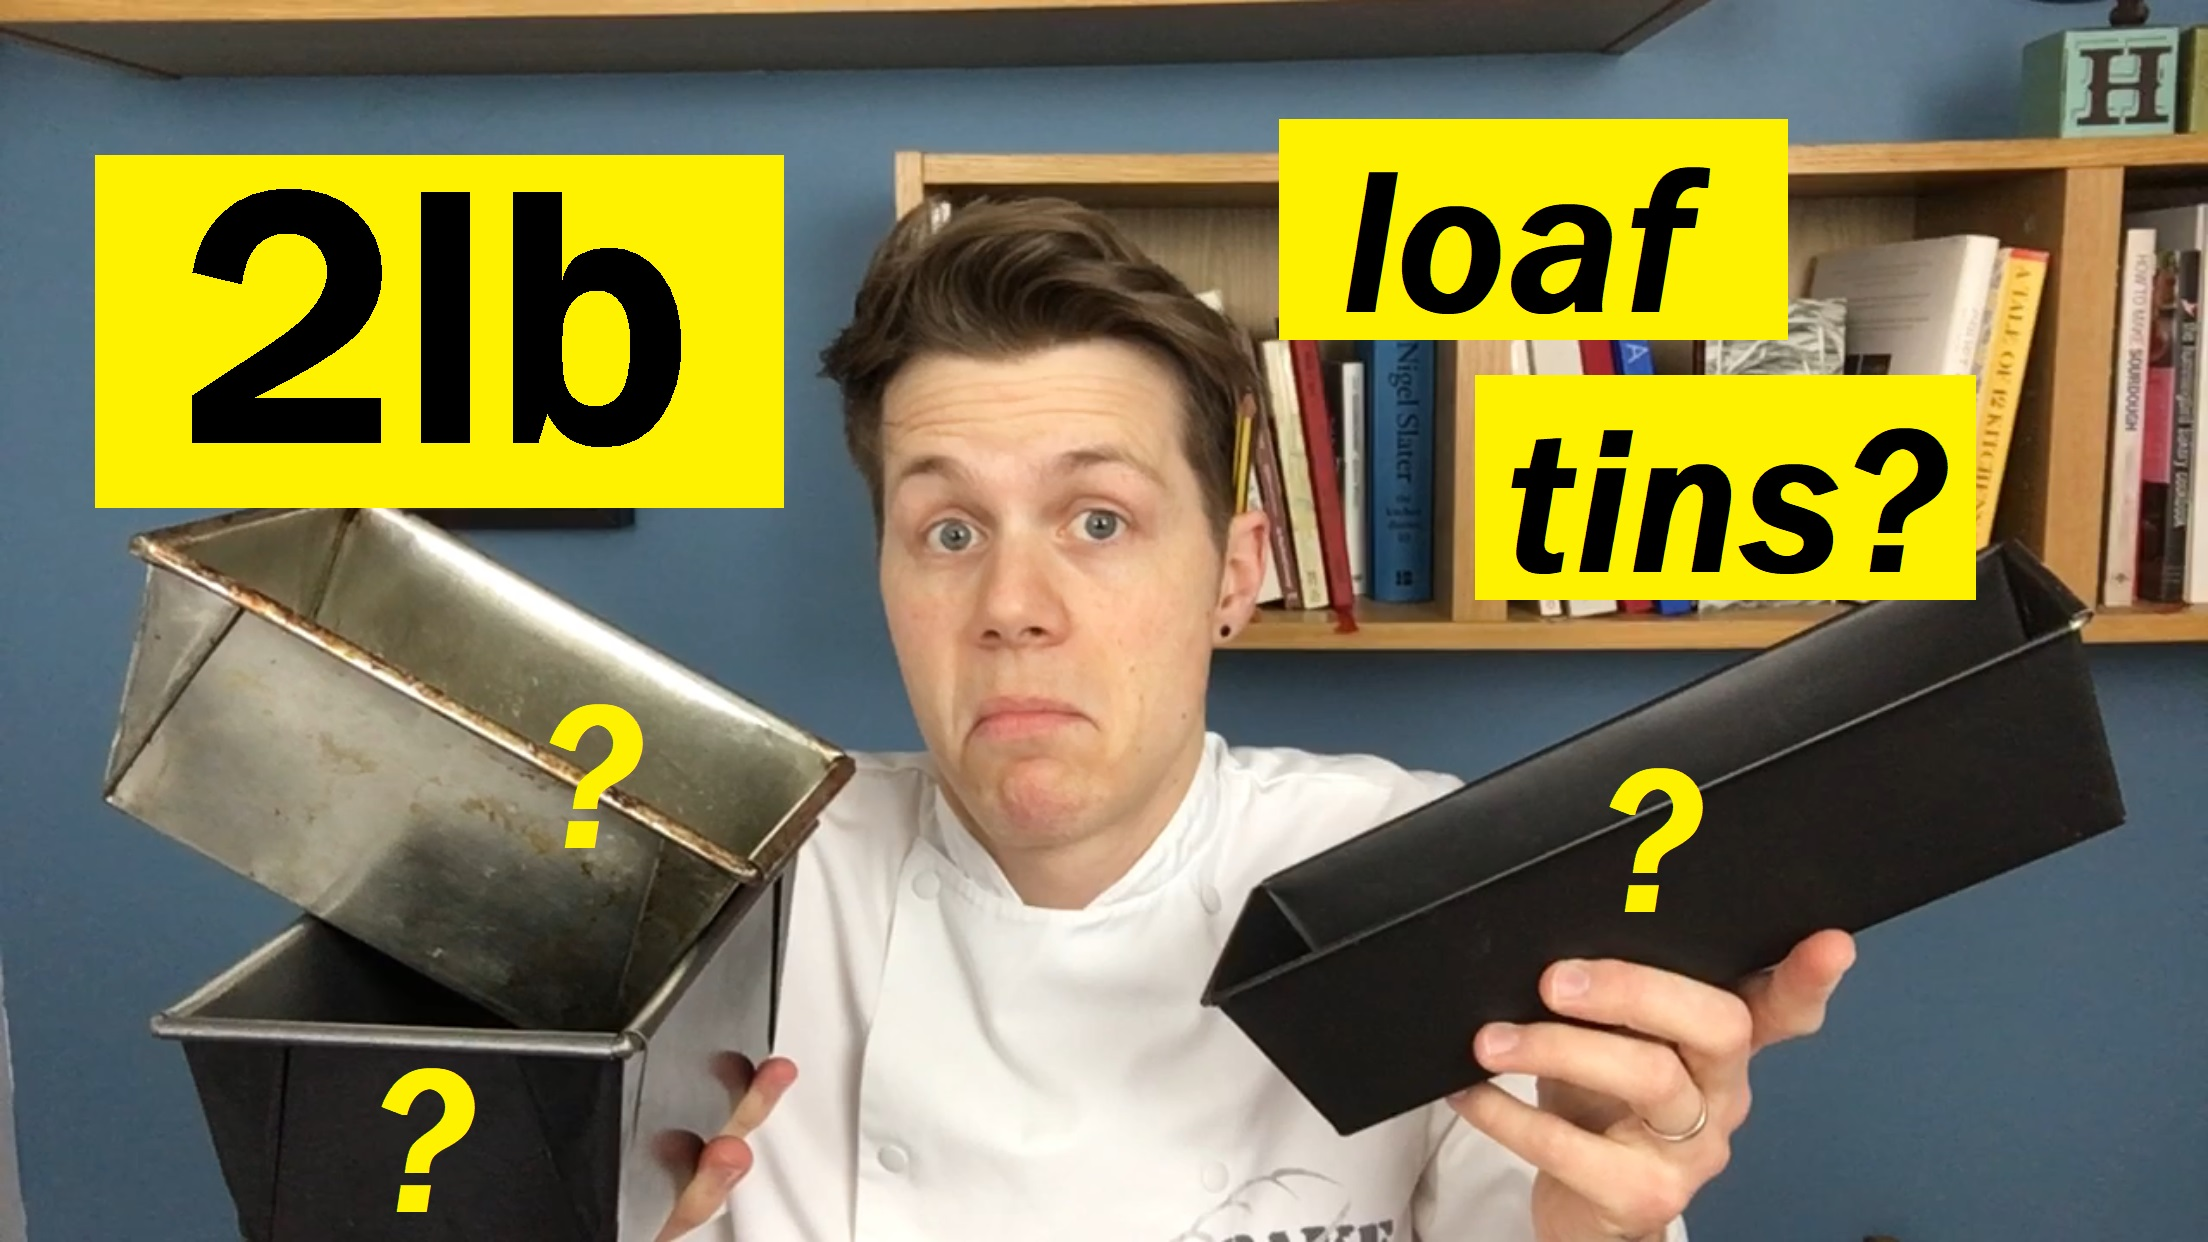 Watch next - Bread Tip 57: What is a 2lb loaf tin?